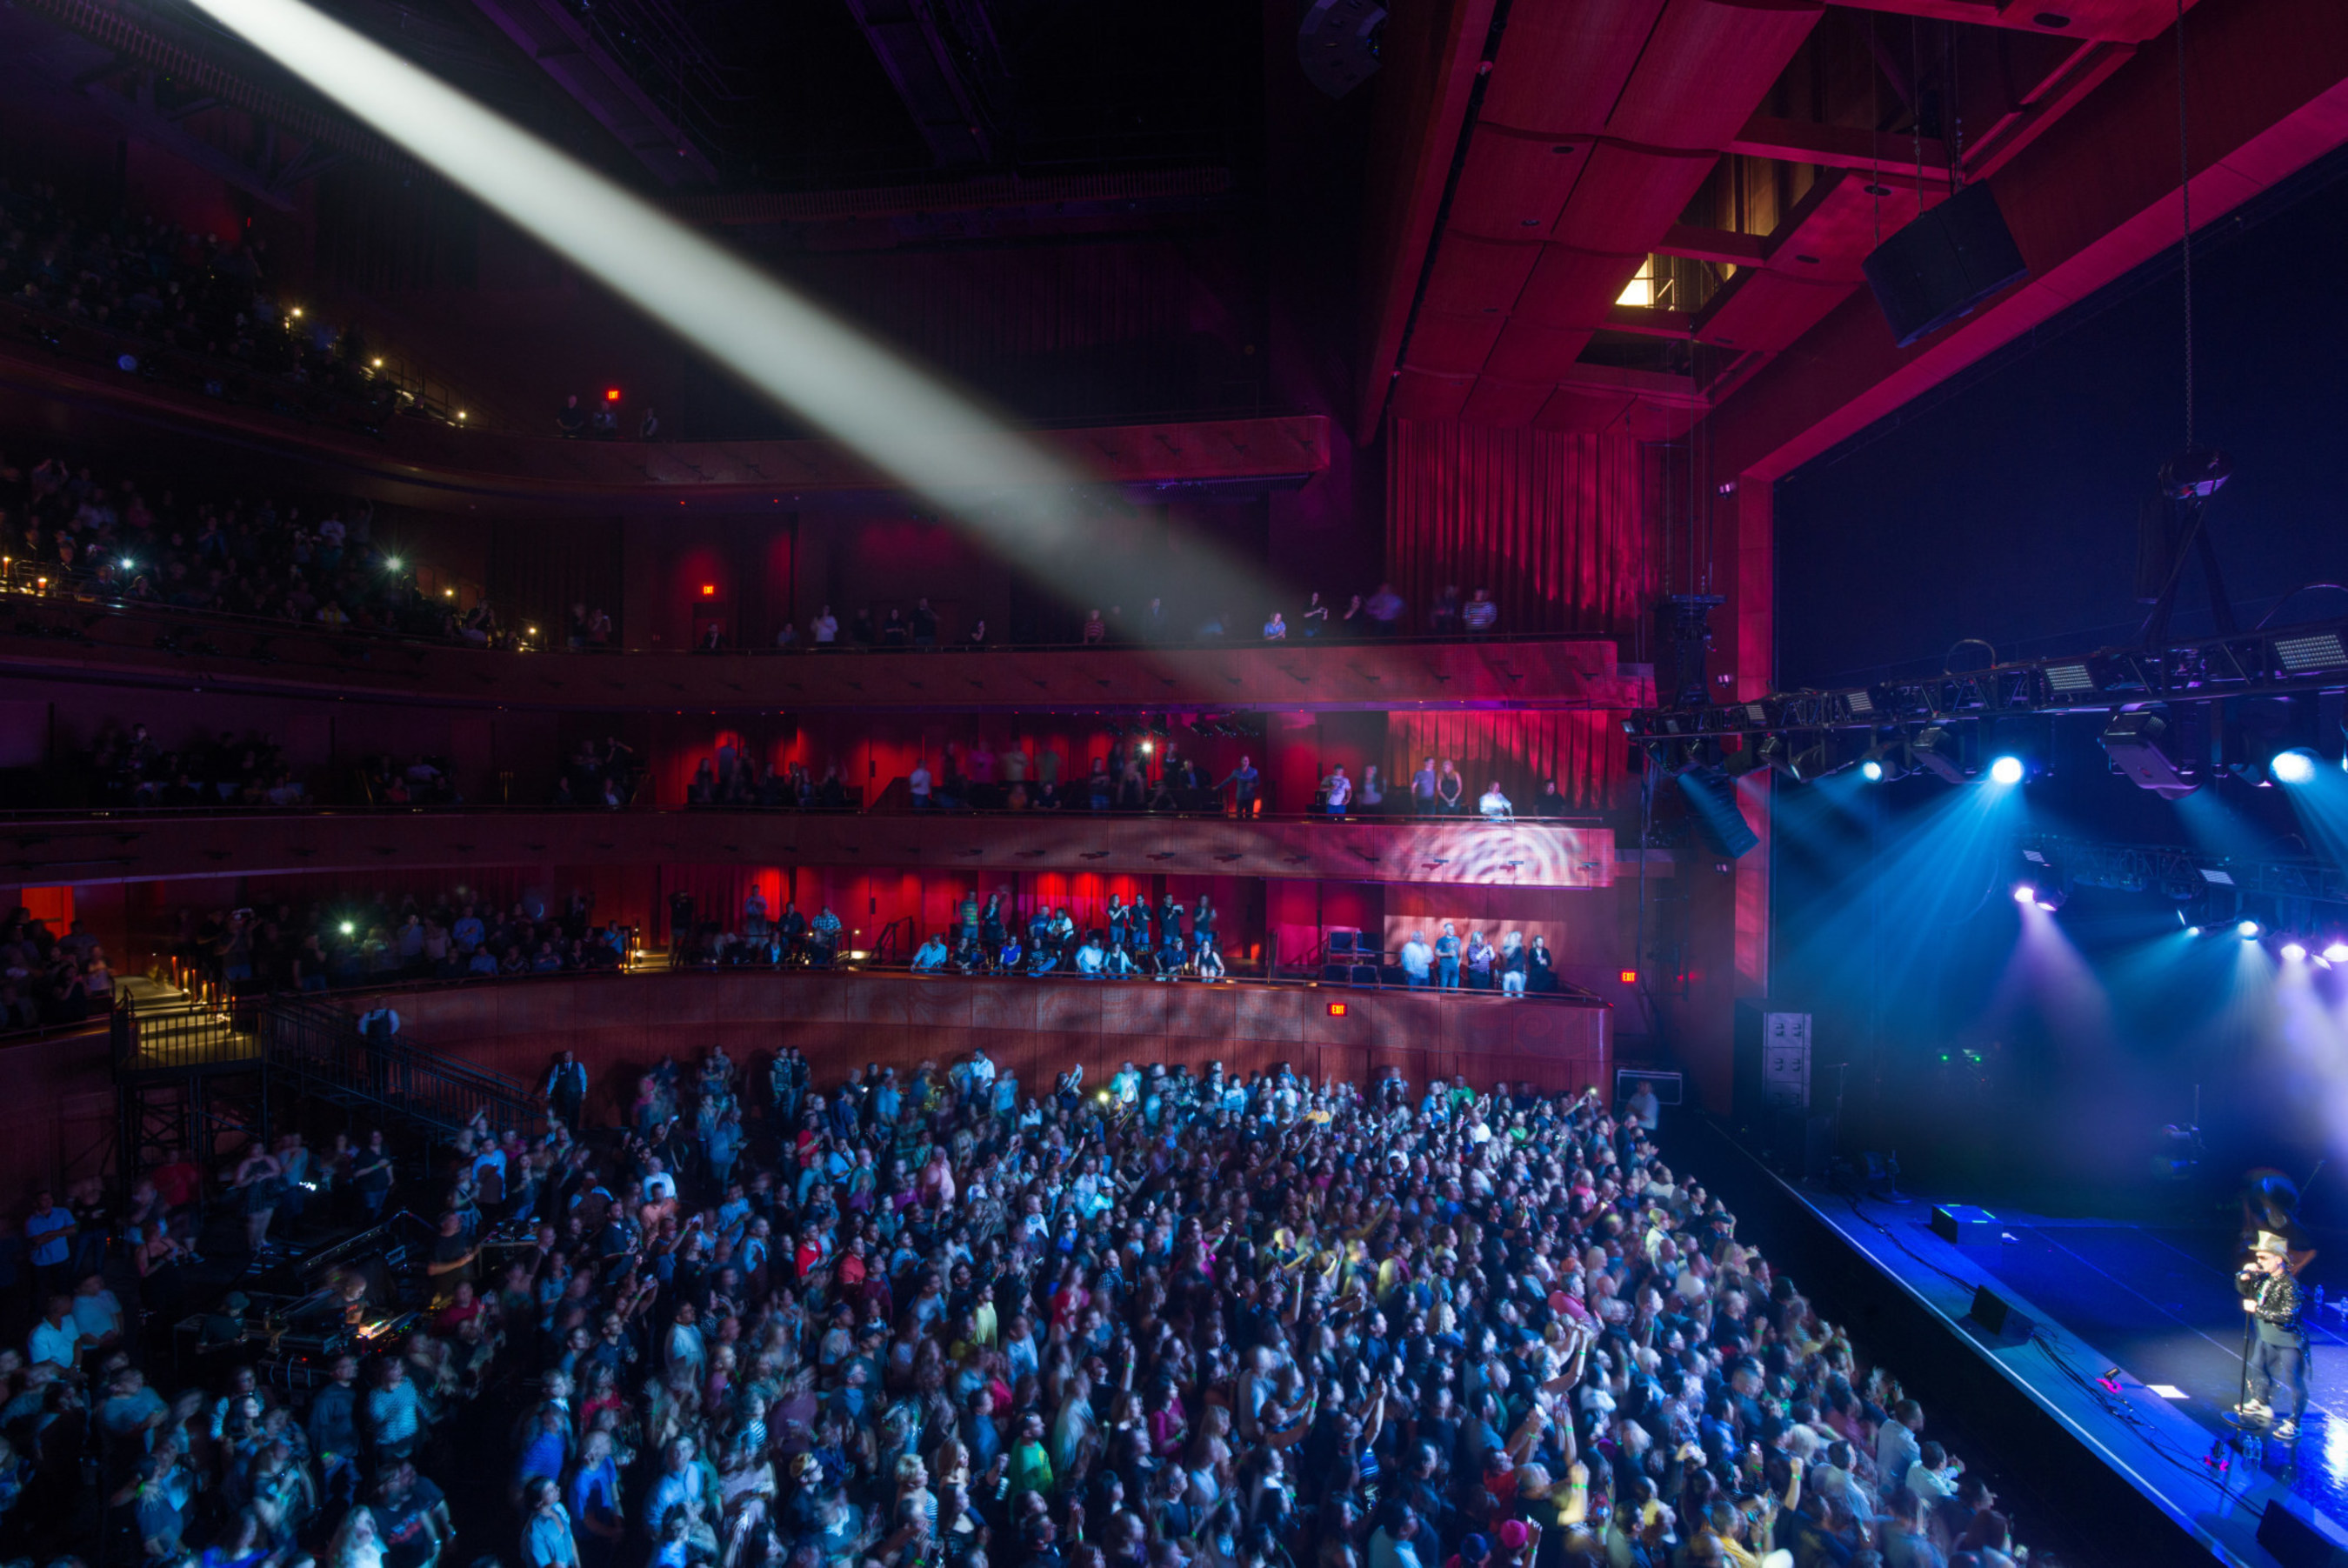 Tobin Center for the Performing Arts. The main performance hall features a movable floor which accommodates a variety of configurations to support symphony, banquet, and flat floor concerts (shown here). Image by Mark Menjivar.